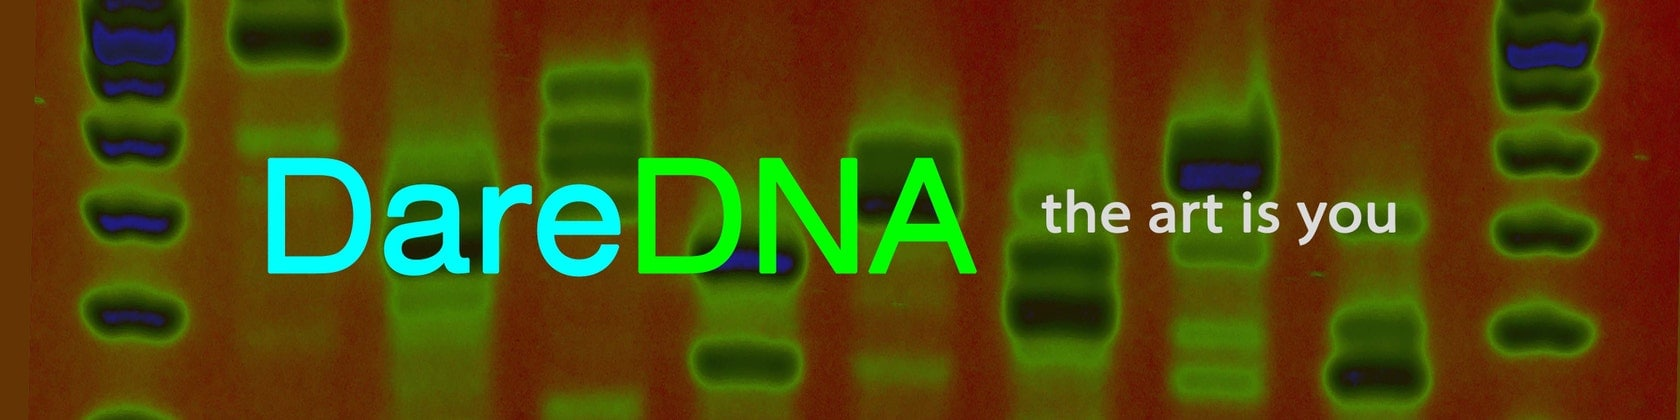 Custom dna art for people dogs cats by daredna on etsy for Personalized dna art